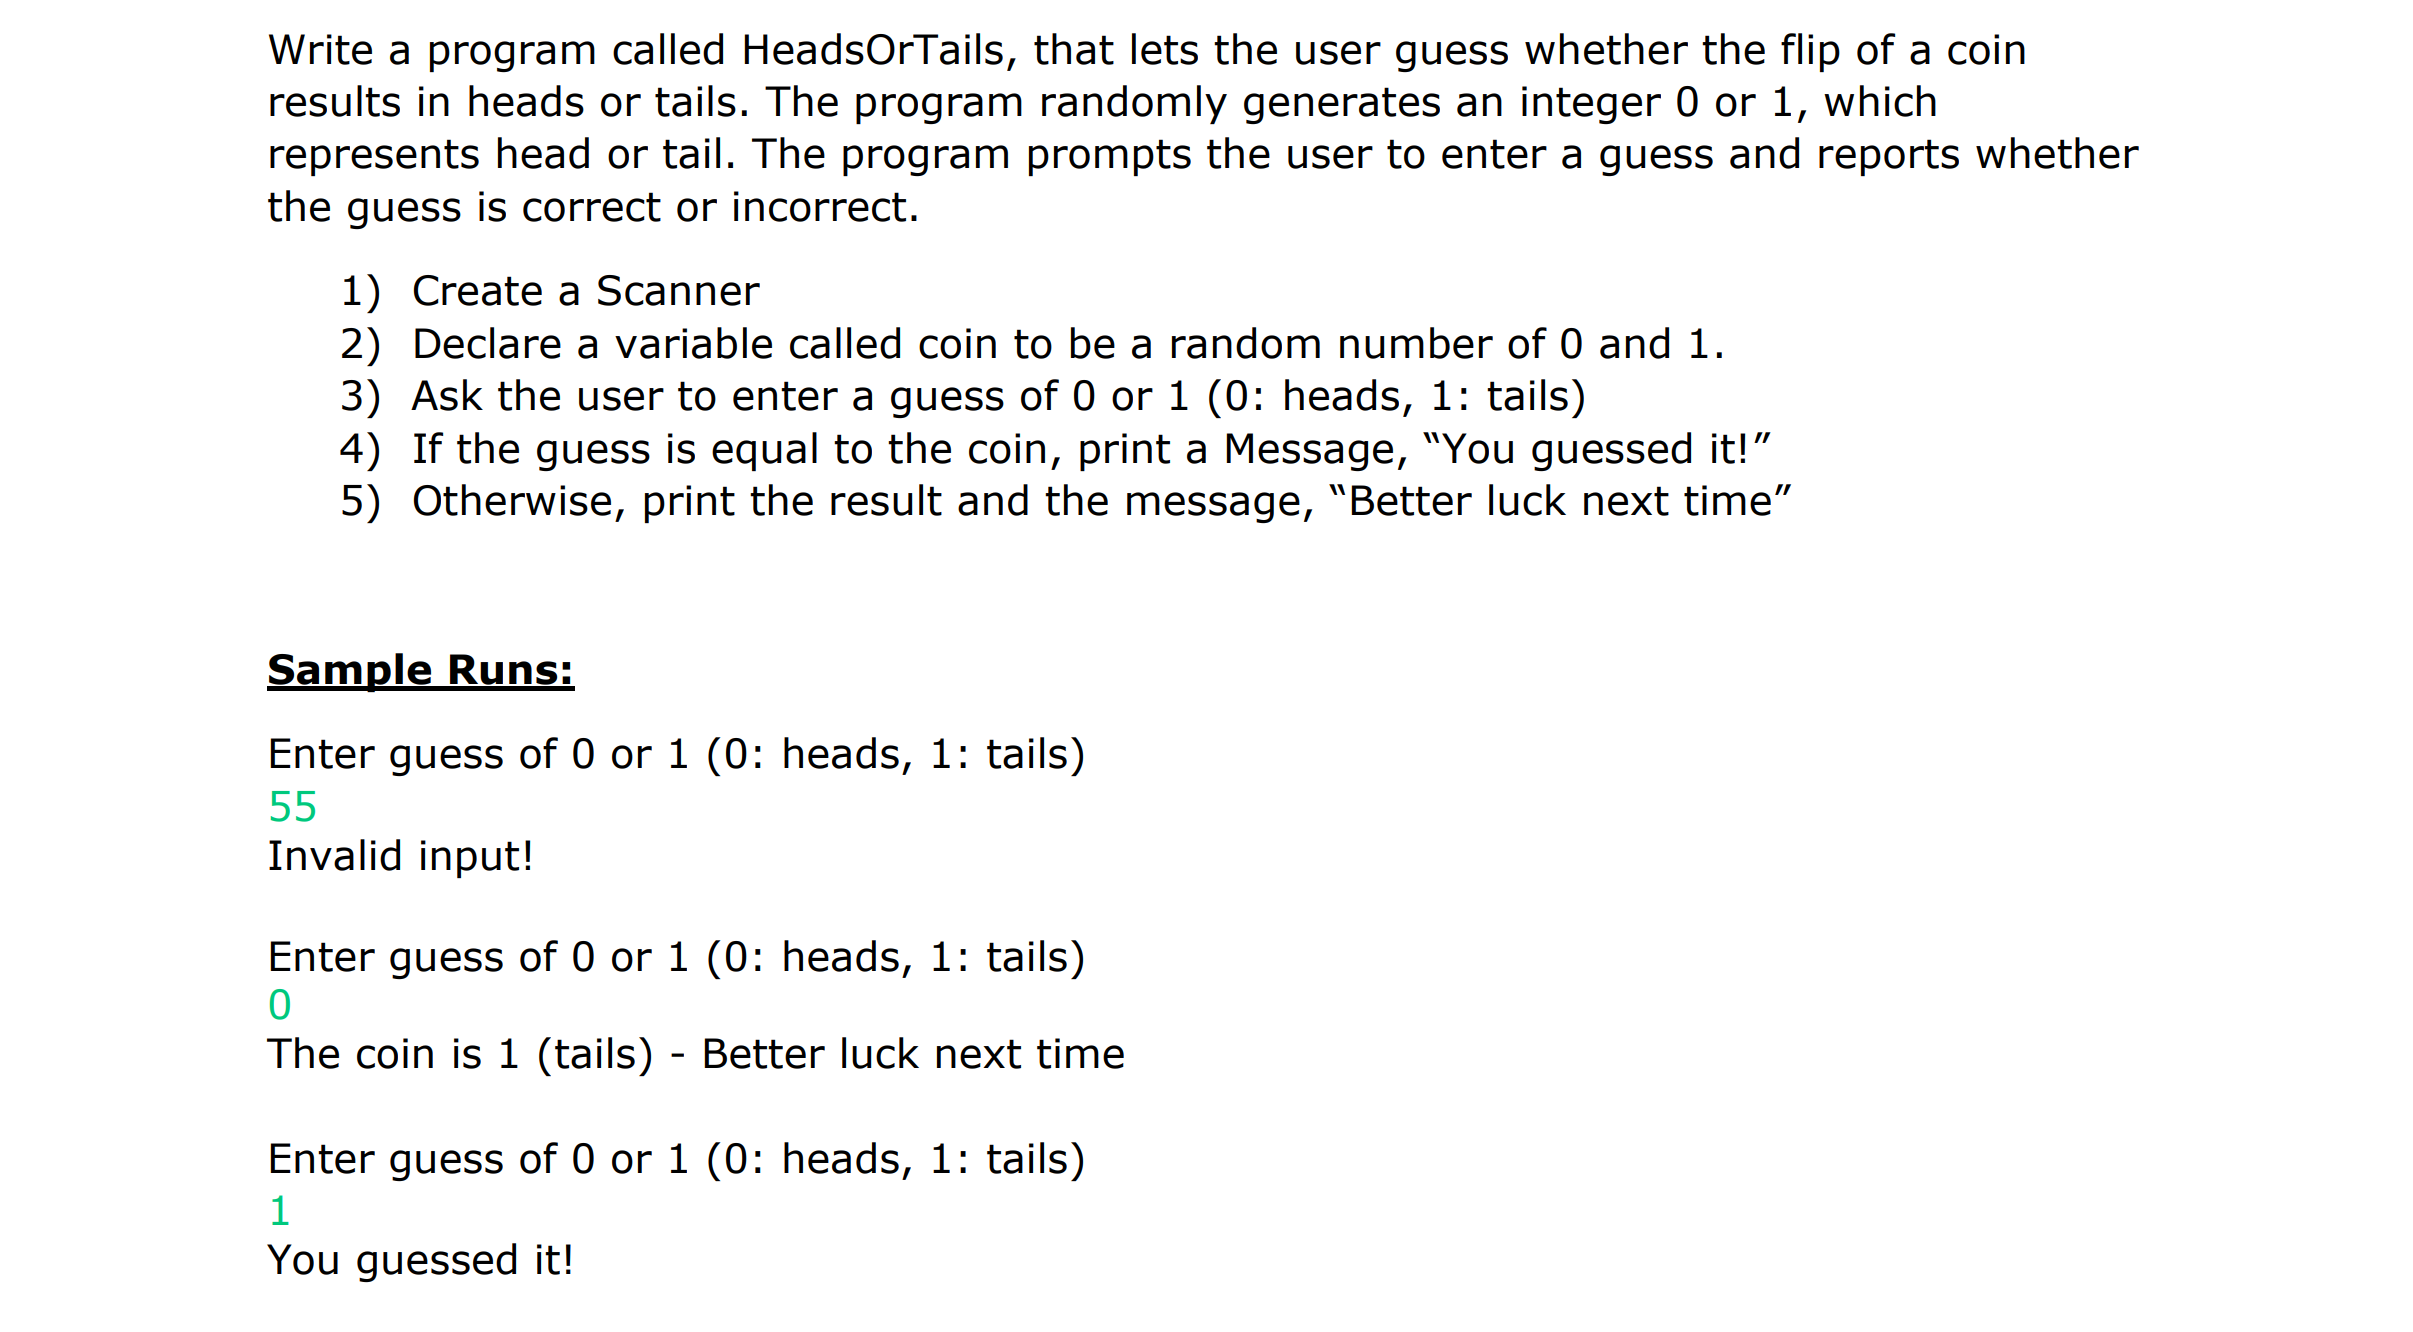 "Write a program called HeadsOrTails, that lets the user guess whether the flip of a coin results in heads or tails. The program randomly generates an integer 0 or 1, which represents head or tail. The program prompts the user to enter a guess and reports whether the guess is correct or incorrect. 1) Create a Scanner 2) Declare a variable called coin to be a random number of 0 and 1 3) Ask the user to enter a guess of 0 or 1 (0: heads, 1: tails) 4) If the guess is equal to the coin, print a Message, ""You guessed it!"" 5) Otherwise, print the result and the message, ""Better luck next time"" Sample Runs: Enter guess of 0 or 1 (0: heads, 1: tails) Invalid input! Enter guess of 0 or 1 (0: heads, 1: tails) 0 The coin is 1 (tailis) - Better luck next time Enter guess of 0 or 1 (0: heads, 1: tails) You guessed it!"